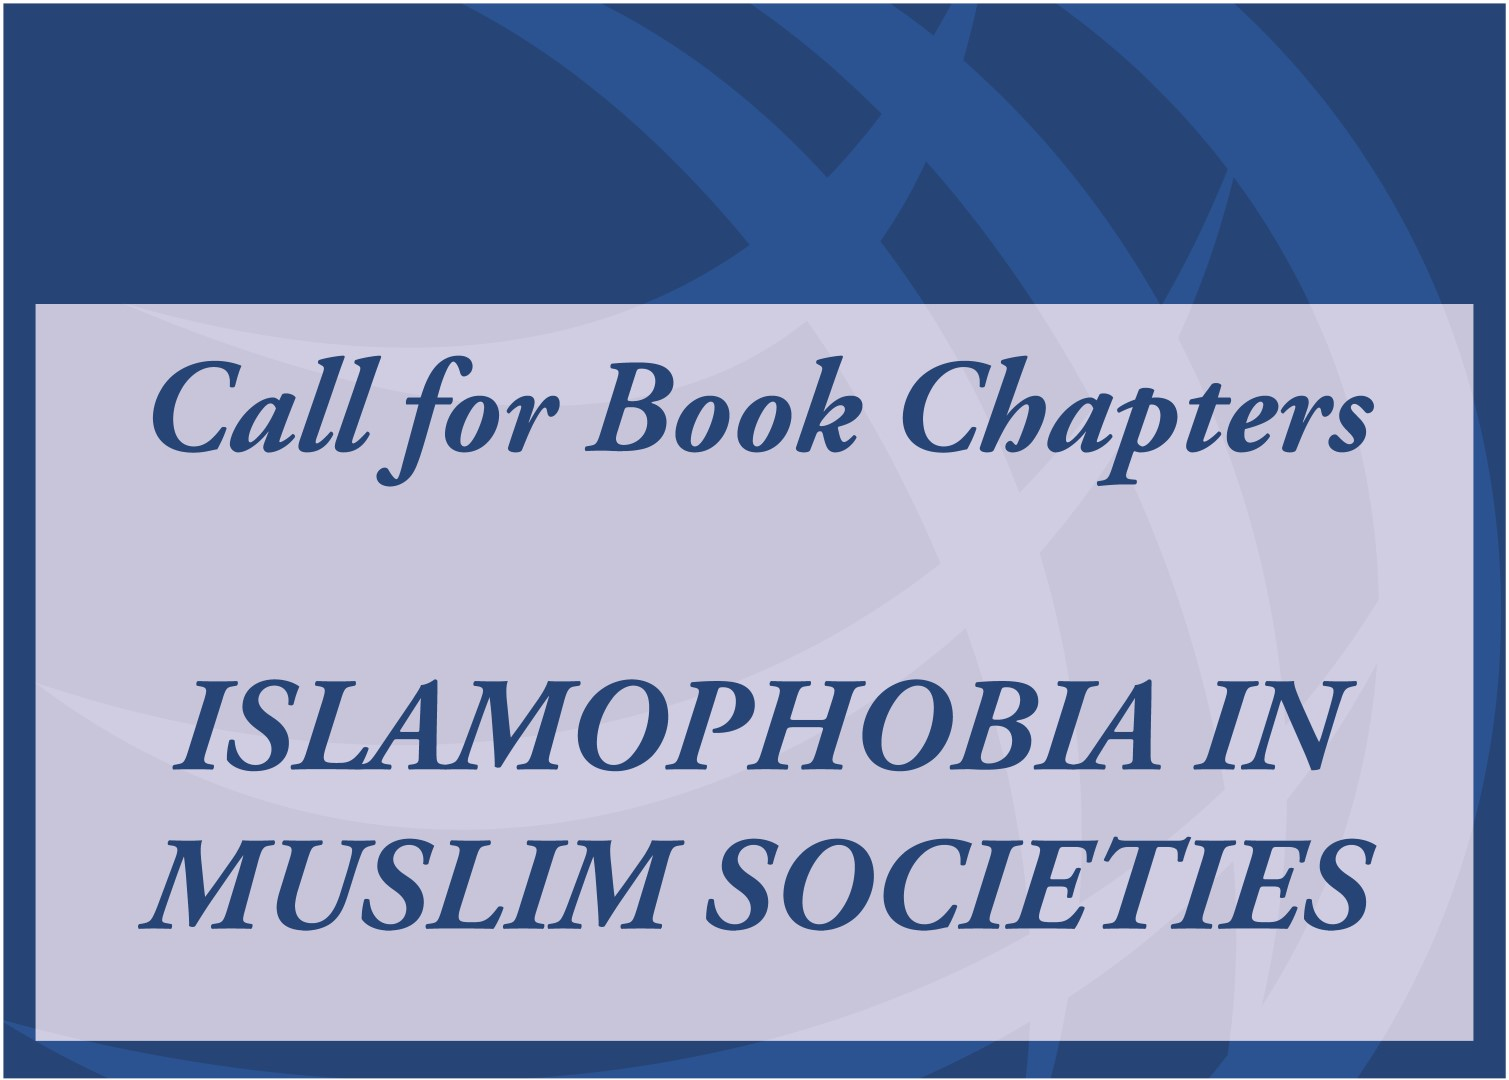 Call for Book Chapters: ISLAMOPHOBIA IN MUSLIM SOCIETIES